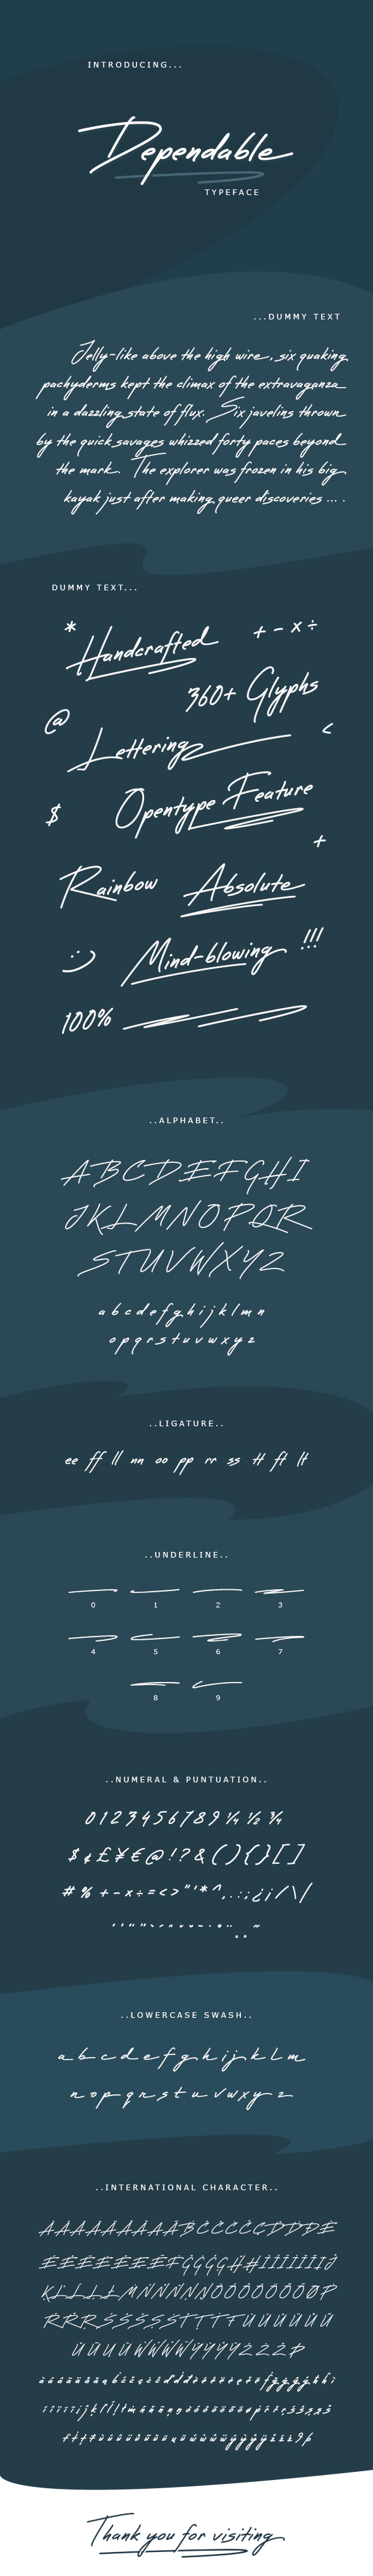 Dependable Font - Hand-writing Script